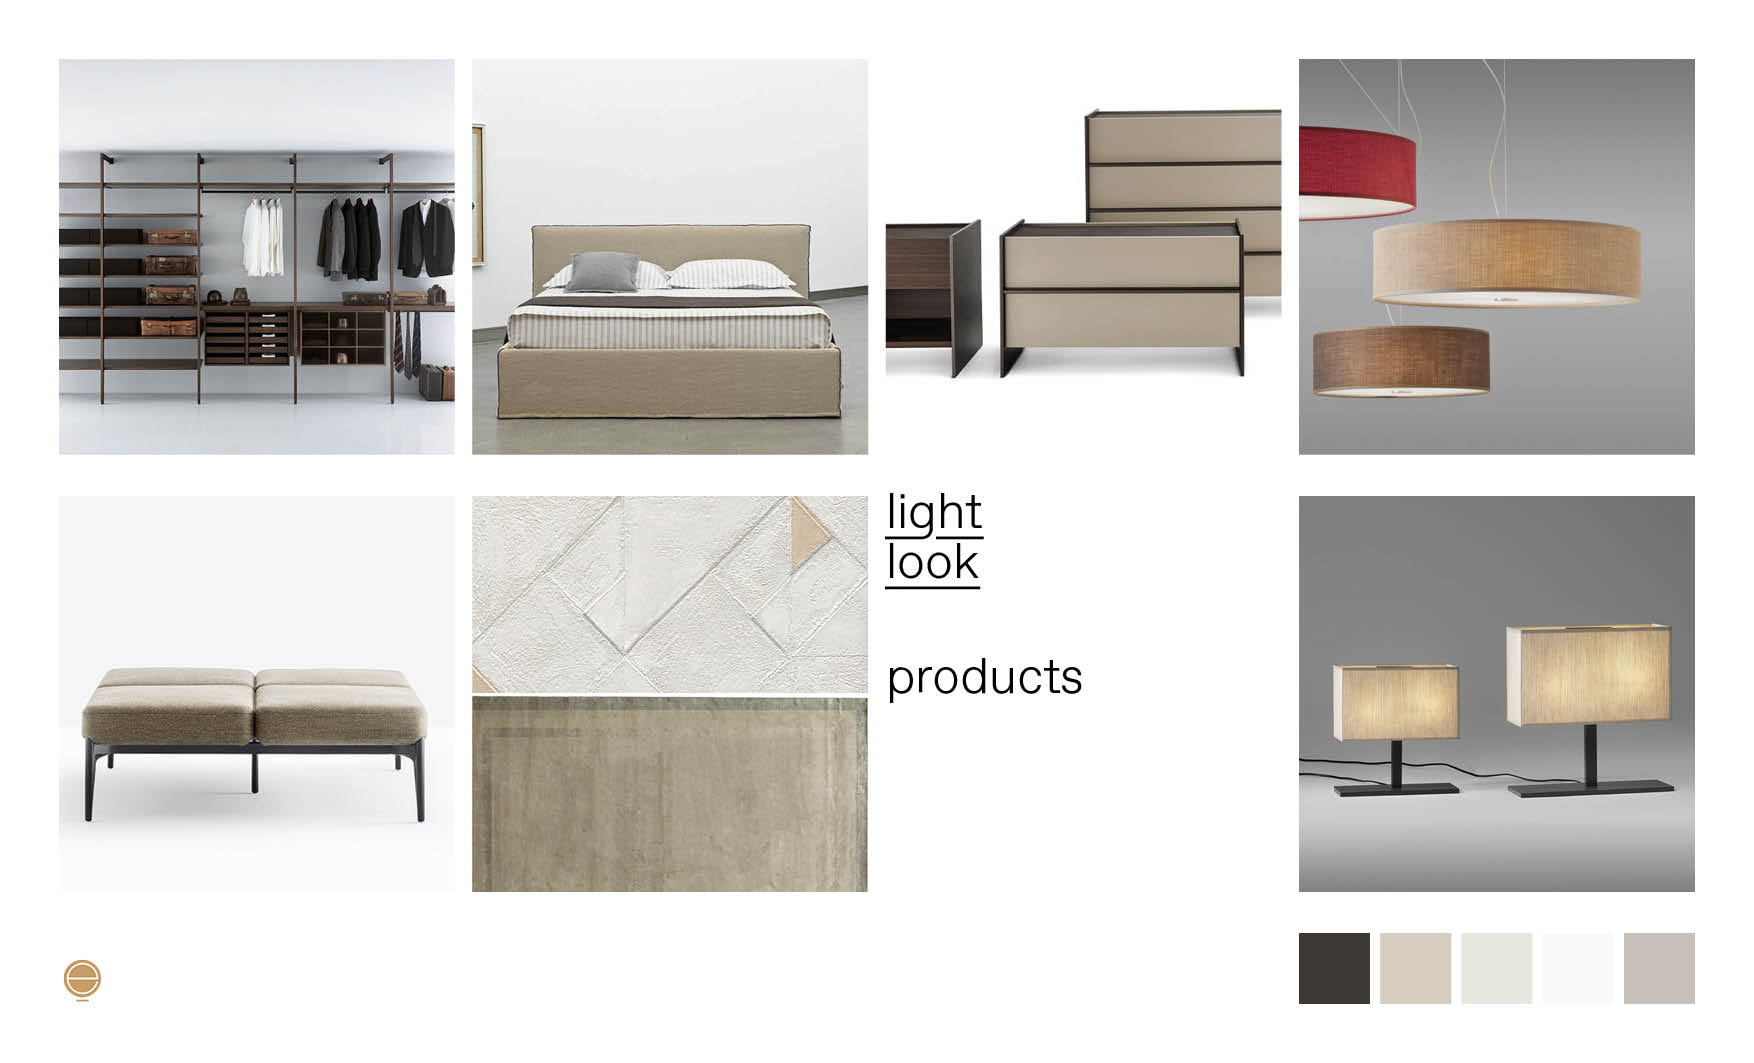 light look Italian modern bedroom furniture composition designed by Esperiri Milano